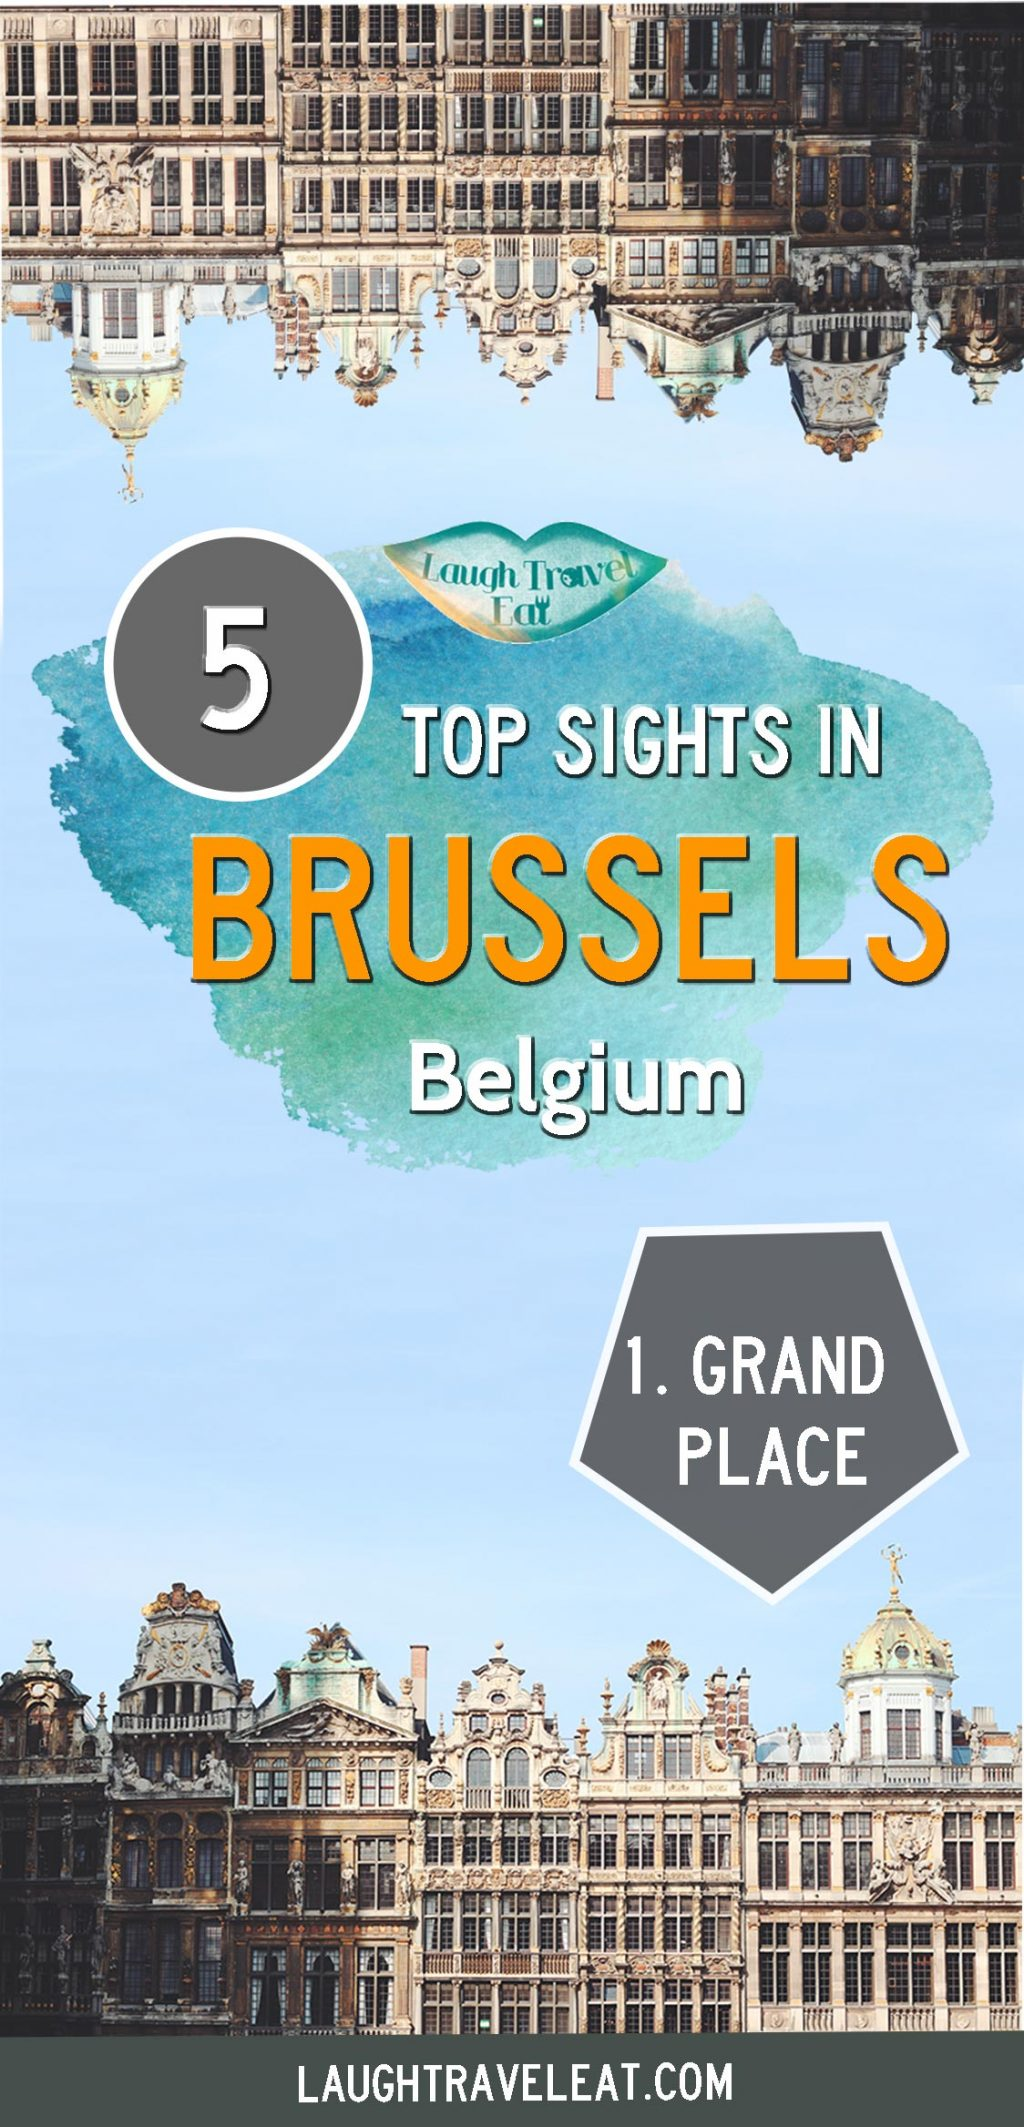 Brussels is the capital of Belgium and boosts many sights. Here is my top 5: